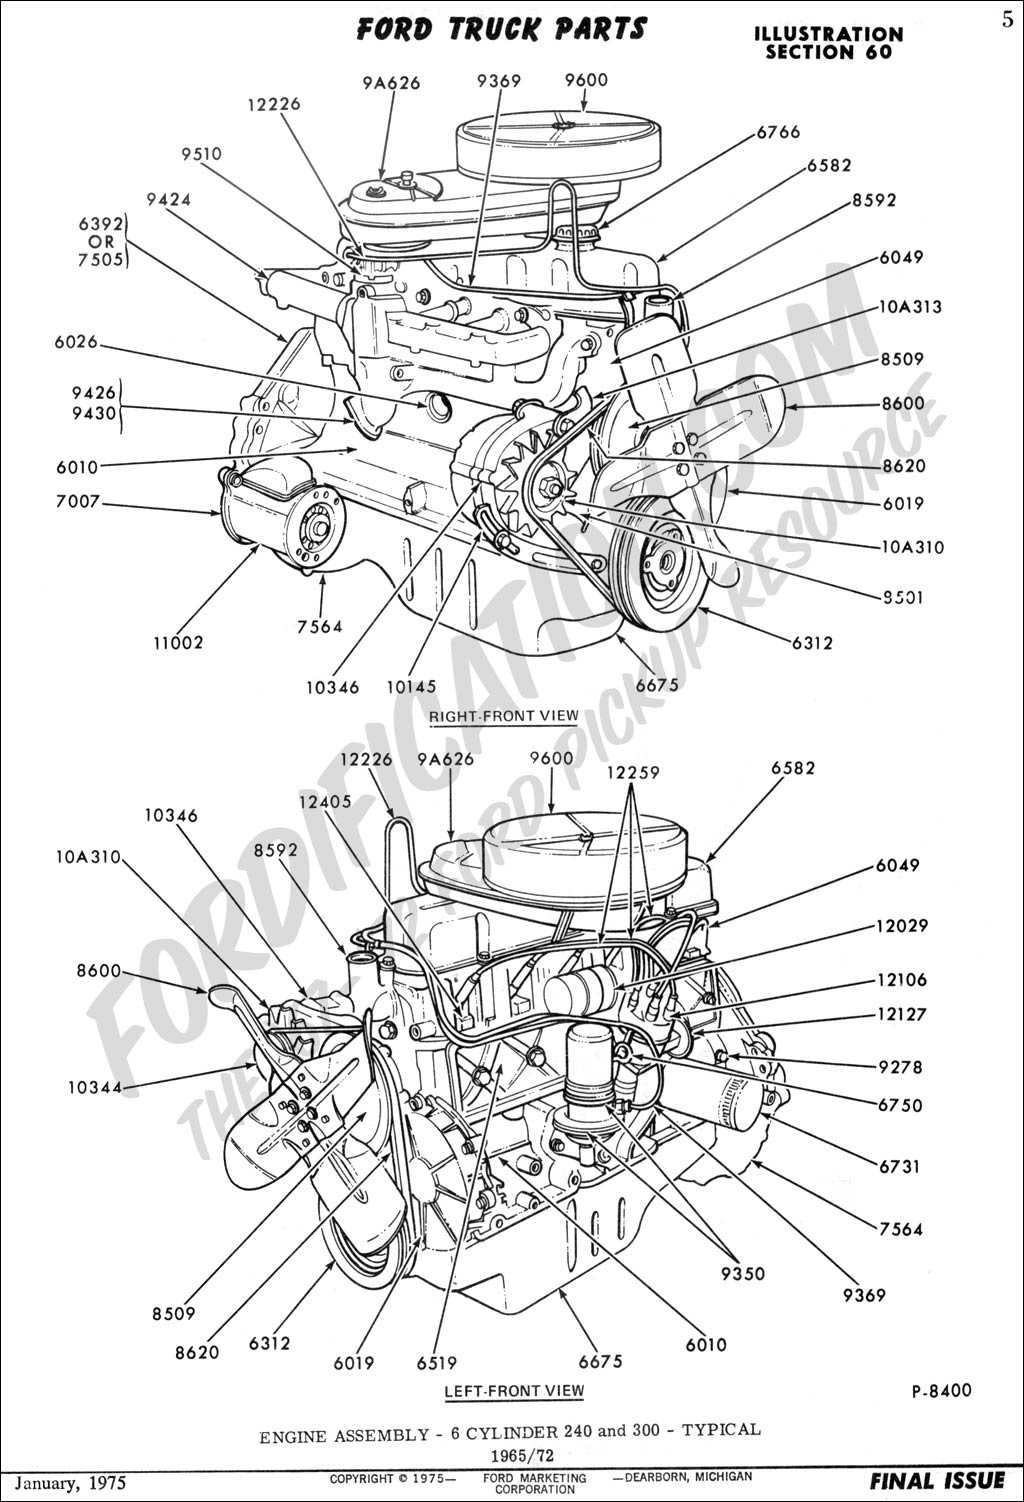 i6 engine diagram wiring diagram u2022 rh championapp co ford 7.3 diesel engine wiring diagram ford 6.7 diesel engine diagram